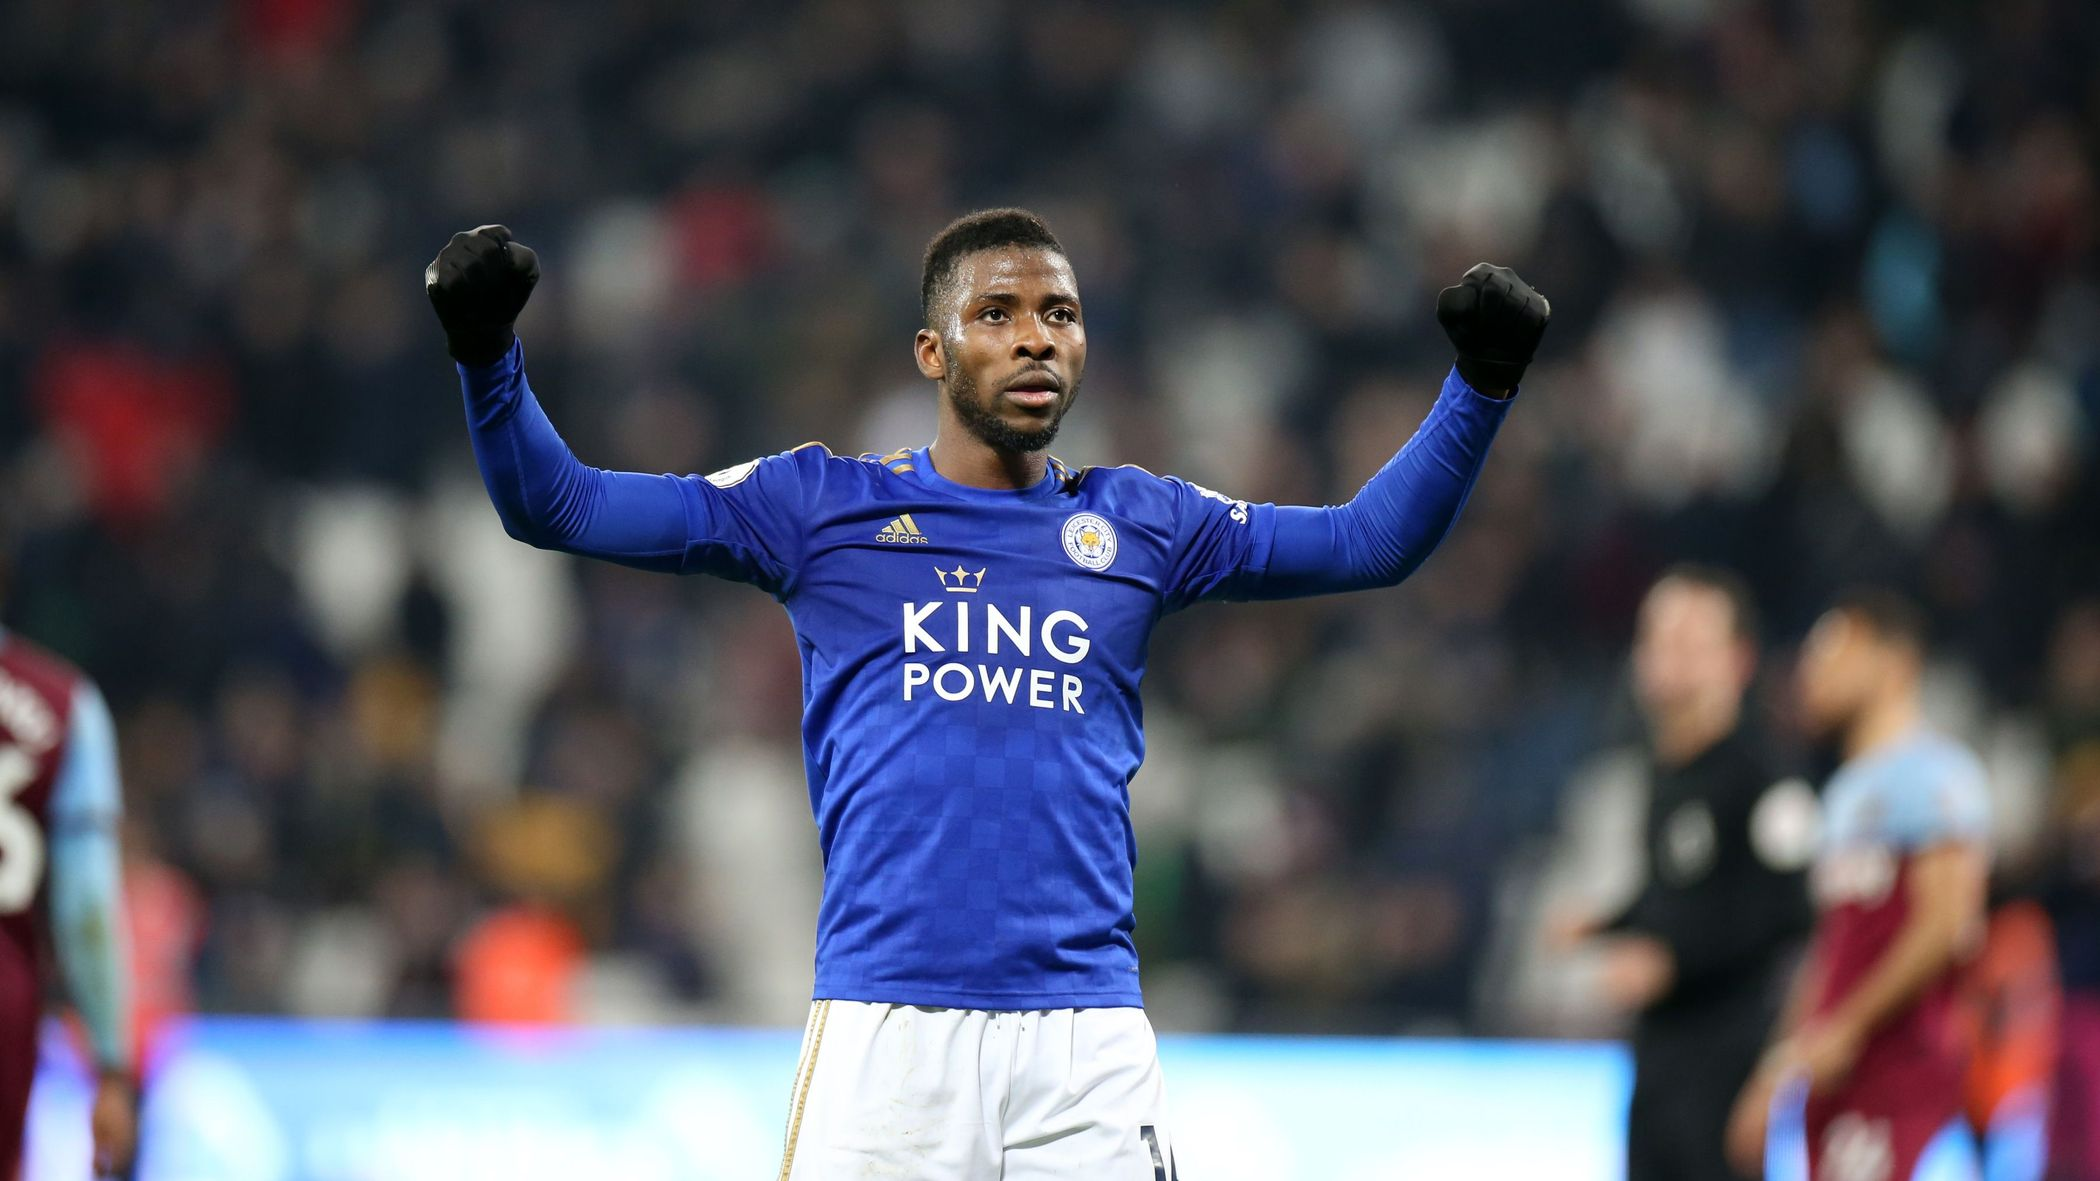 Leicester Vs Arsenal: Iheanacho Strives To Make Carabao Cup History